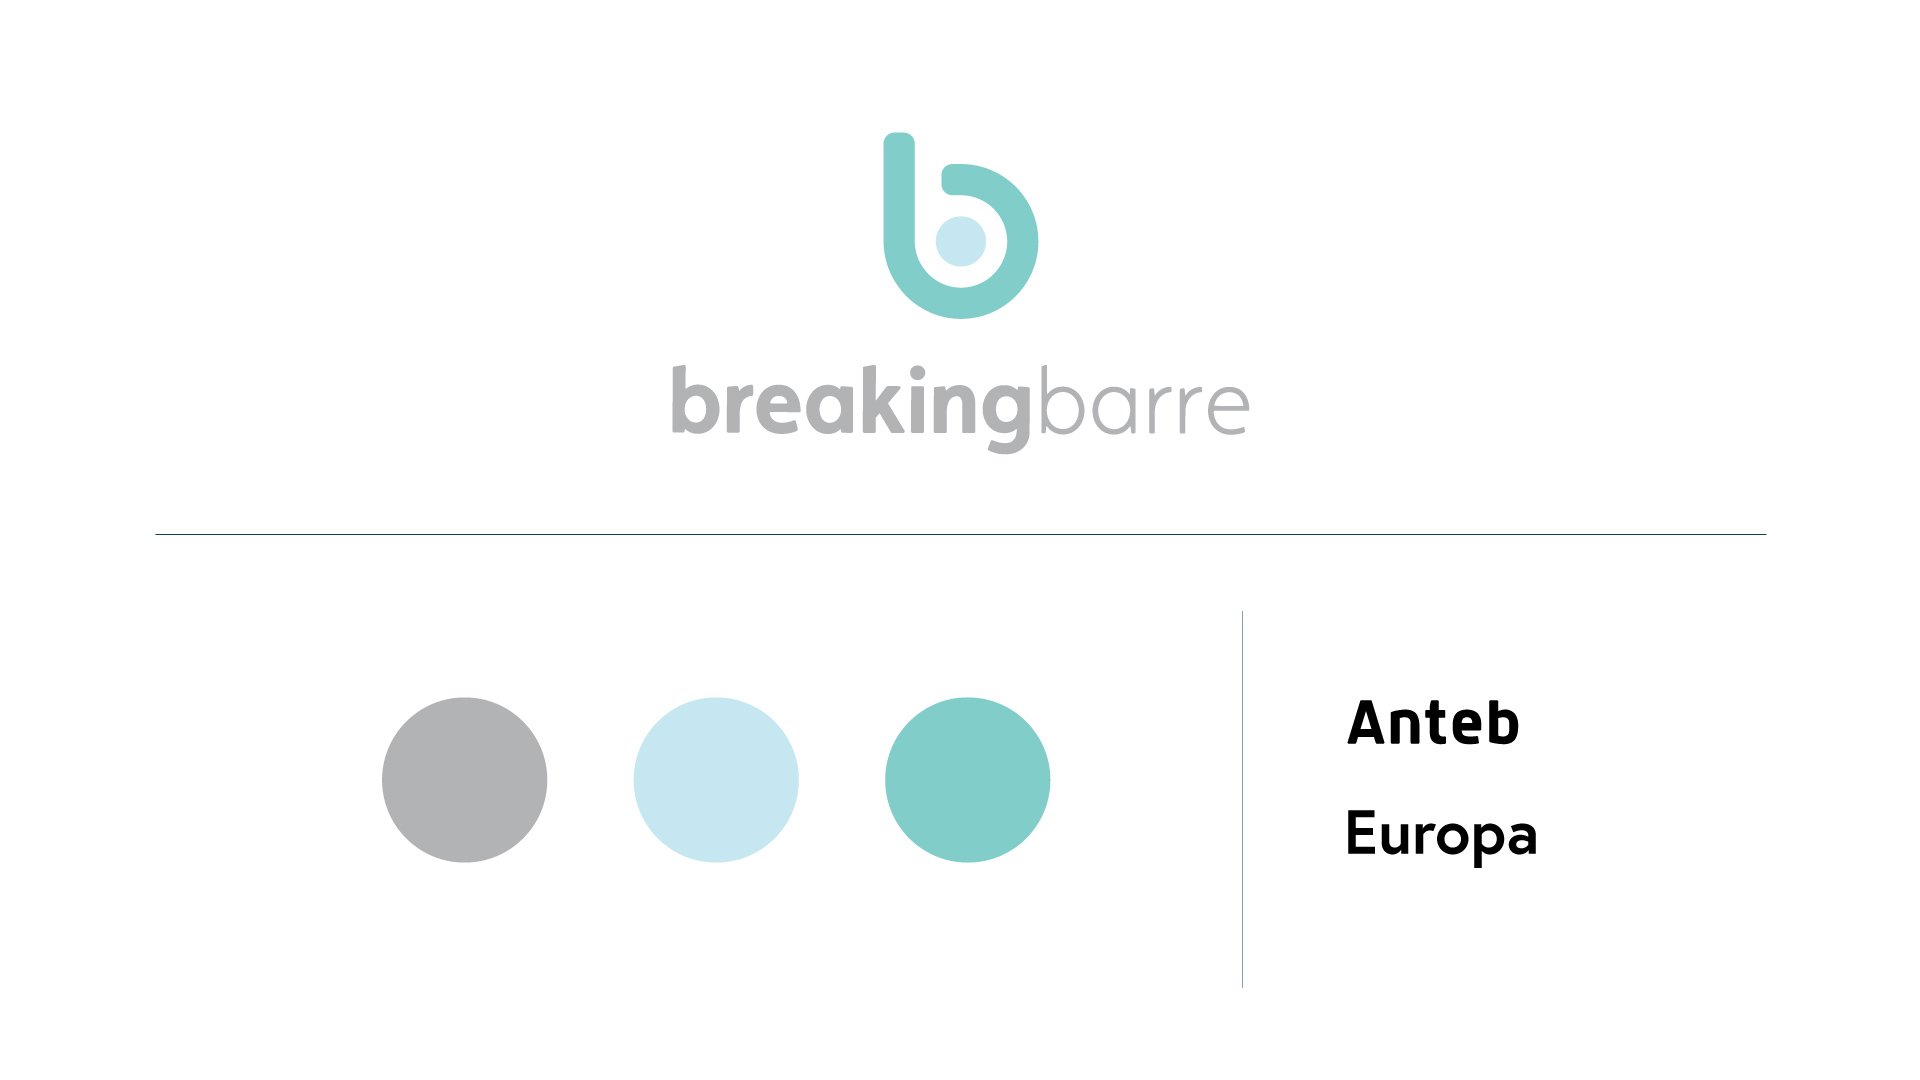 Colors and logo for Breaking Barre's new branding by 877